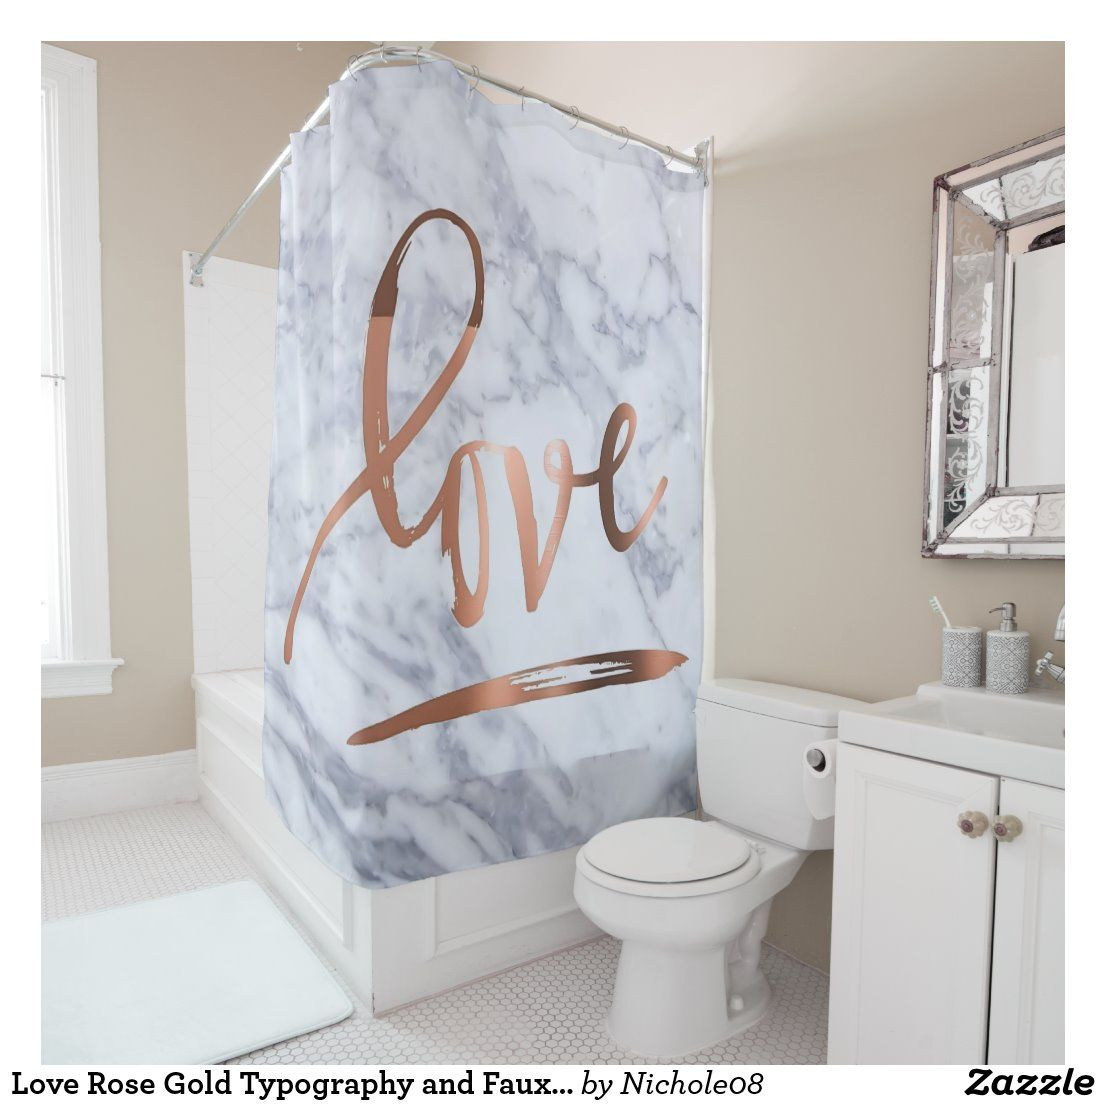 Love Rose Gold Typography And Faux Marble Shower Curtain Zazzle Com In 2020 Gold Bathroom Decor Marble Showers Rose Gold Shower Curtain